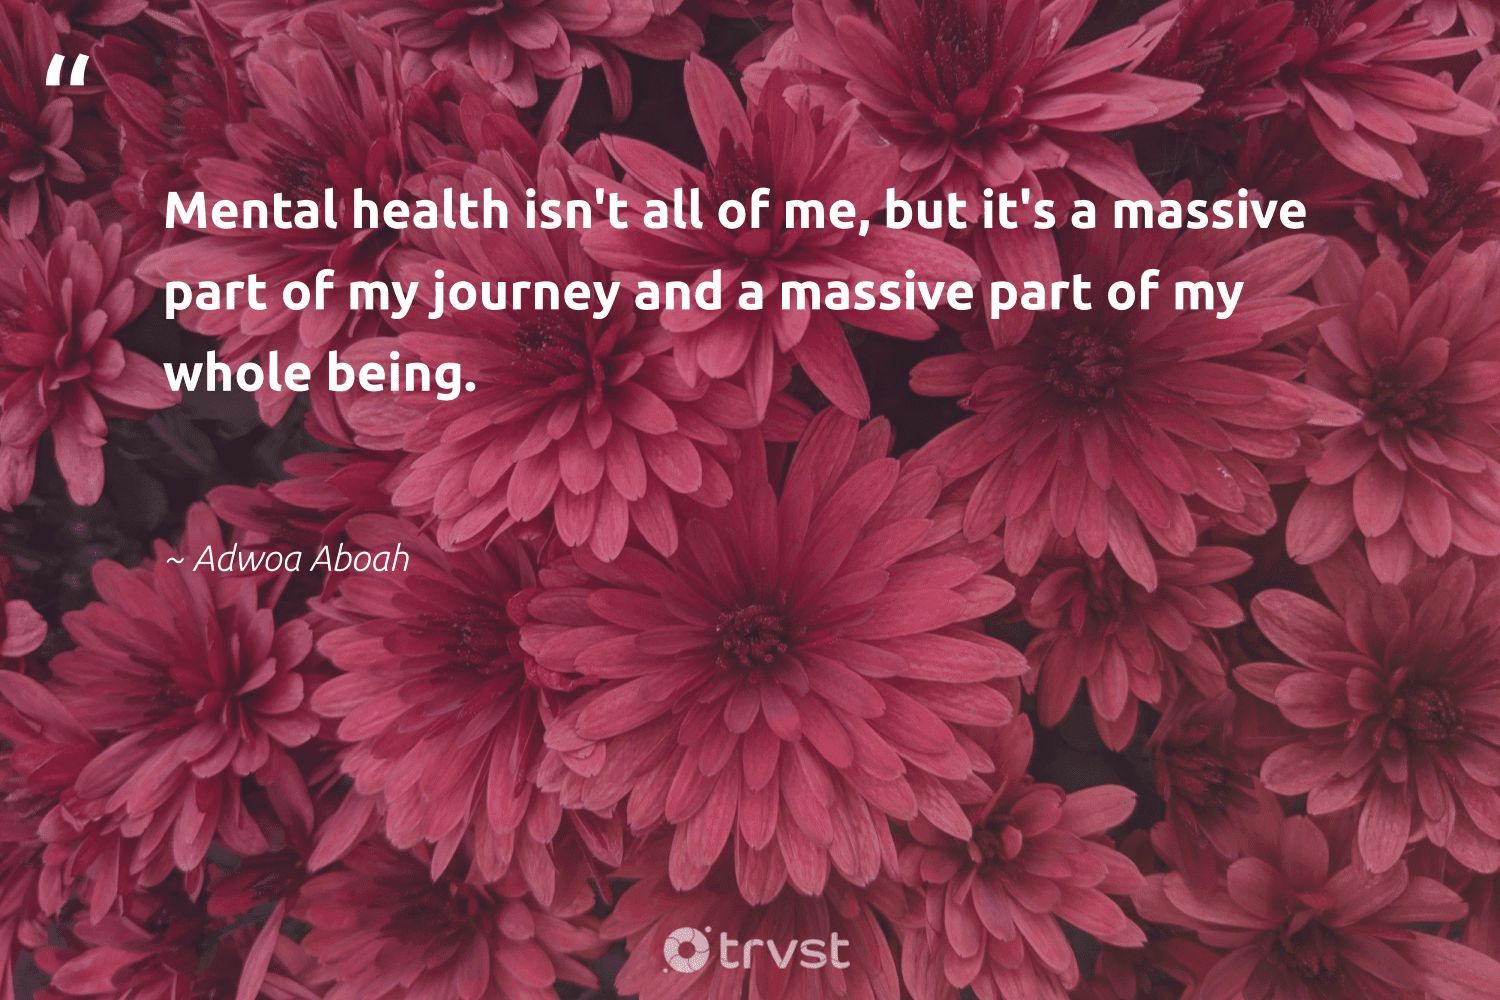 """""""Mental health isn't all of me, but it's a massive part of my journey and a massive part of my whole being.""""  - Adwoa Aboah #trvst #quotes #mentalhealth #health #mentalhealthawareness #mindset #begreat #dogood #mentalhealthmatters #changemakers #nevergiveup #dotherightthing"""